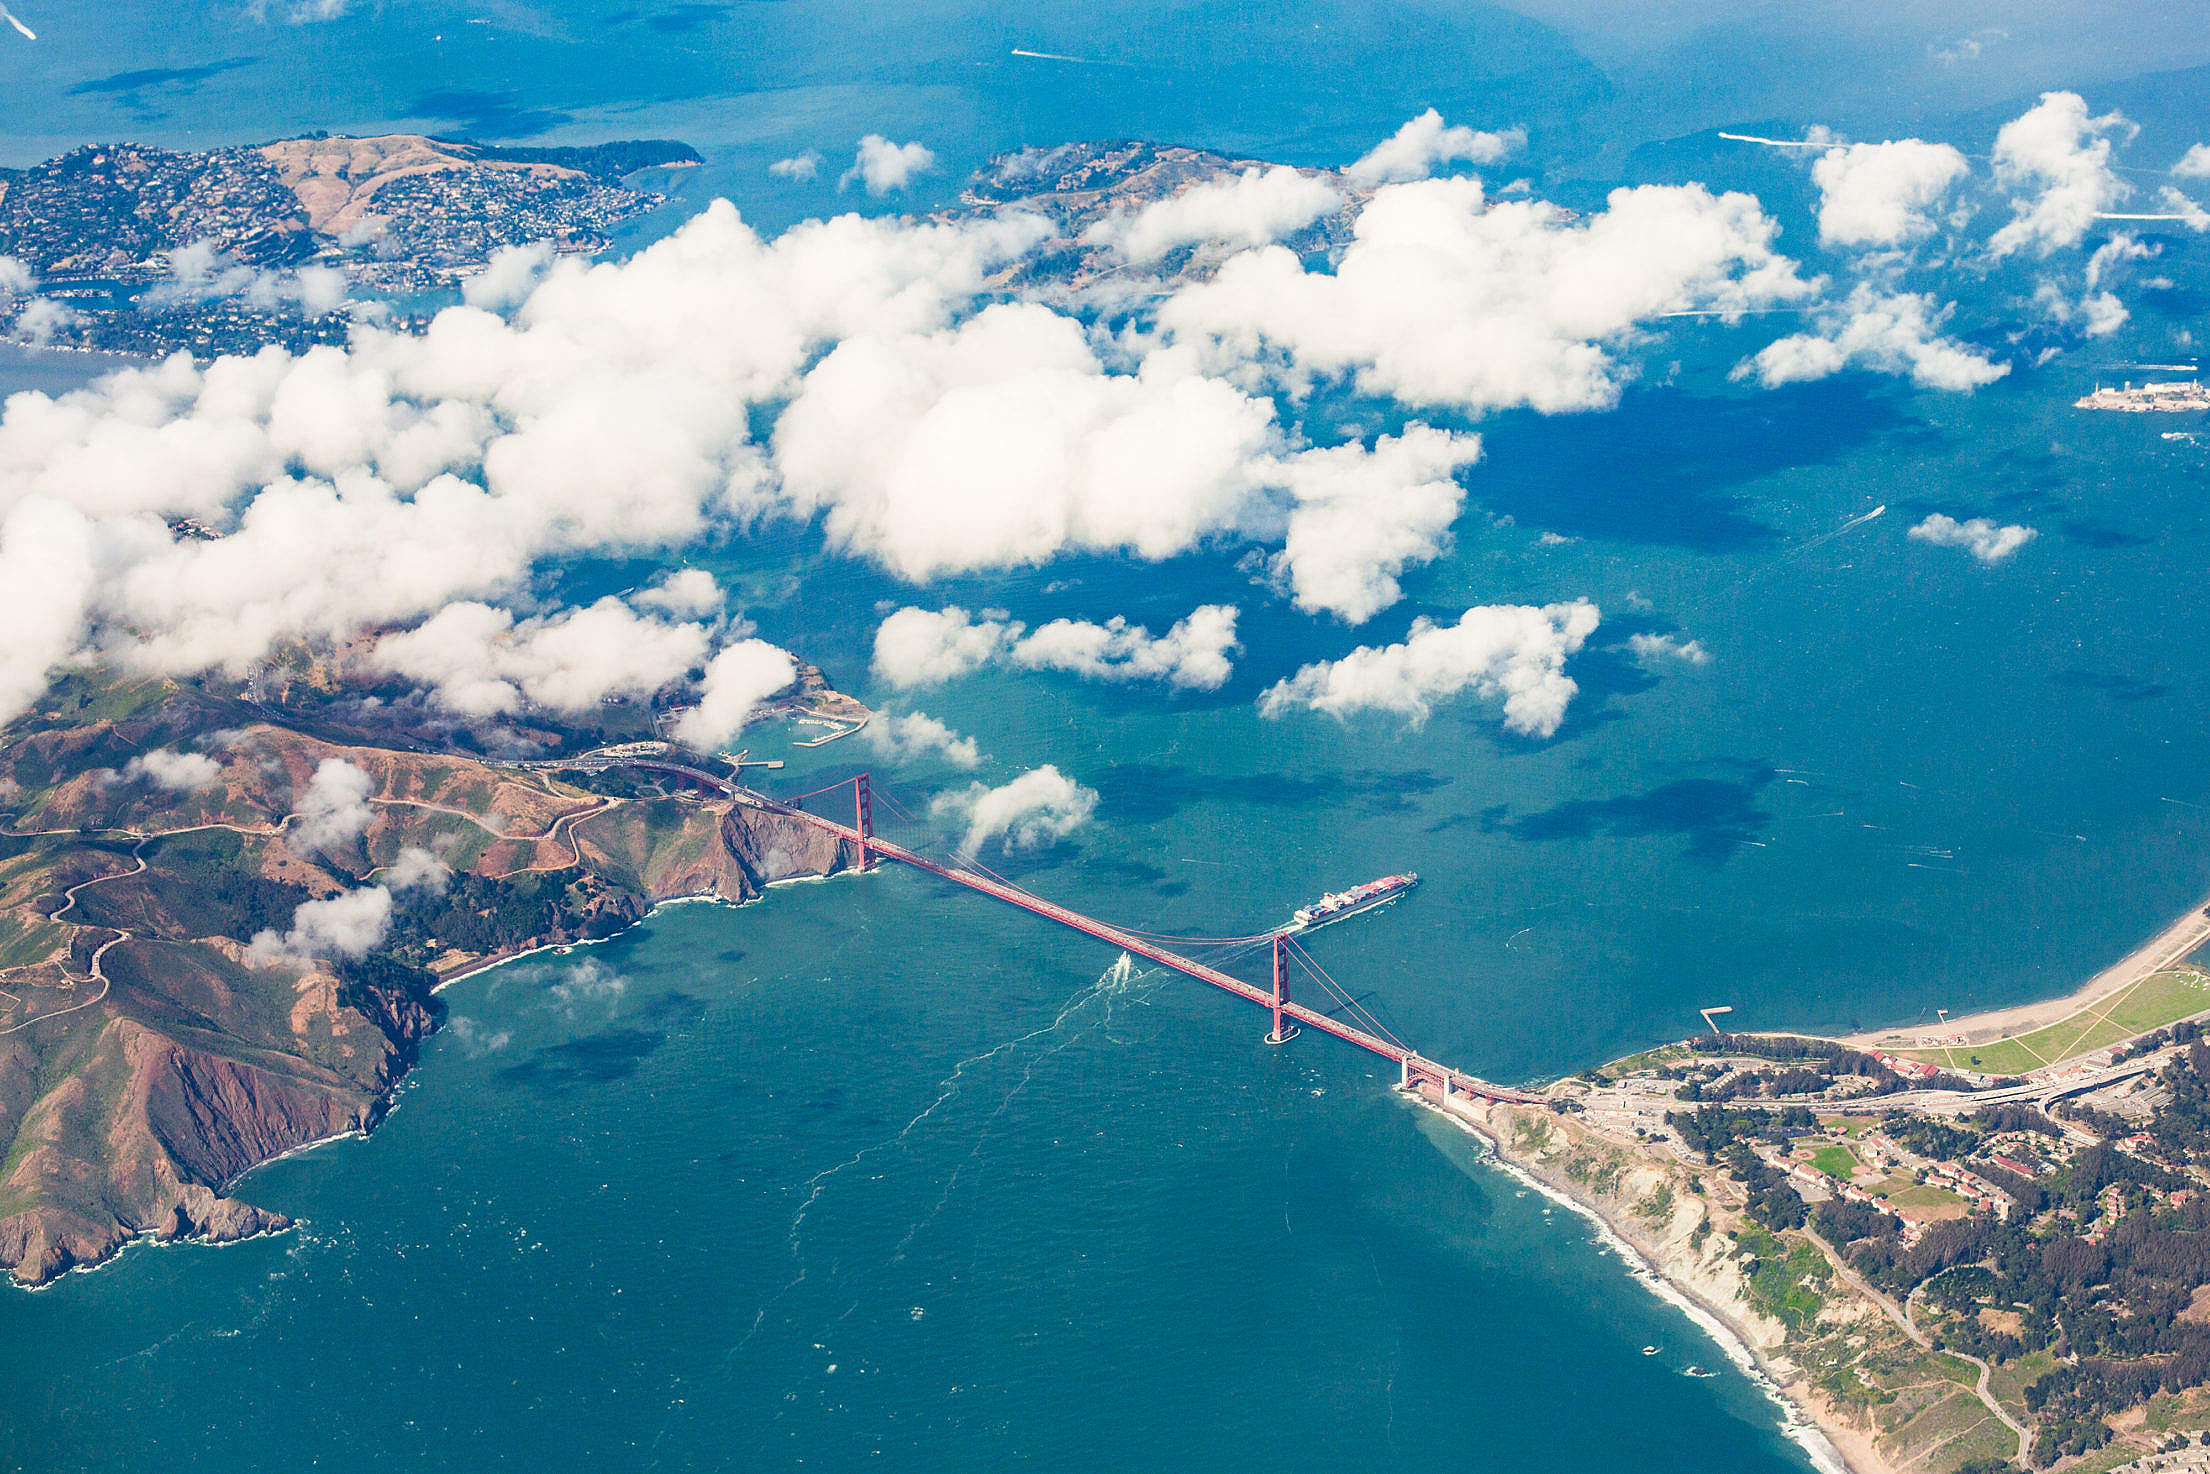 The San Francisco Golden Gate Bridge Captured from Airplane Free Stock Photo